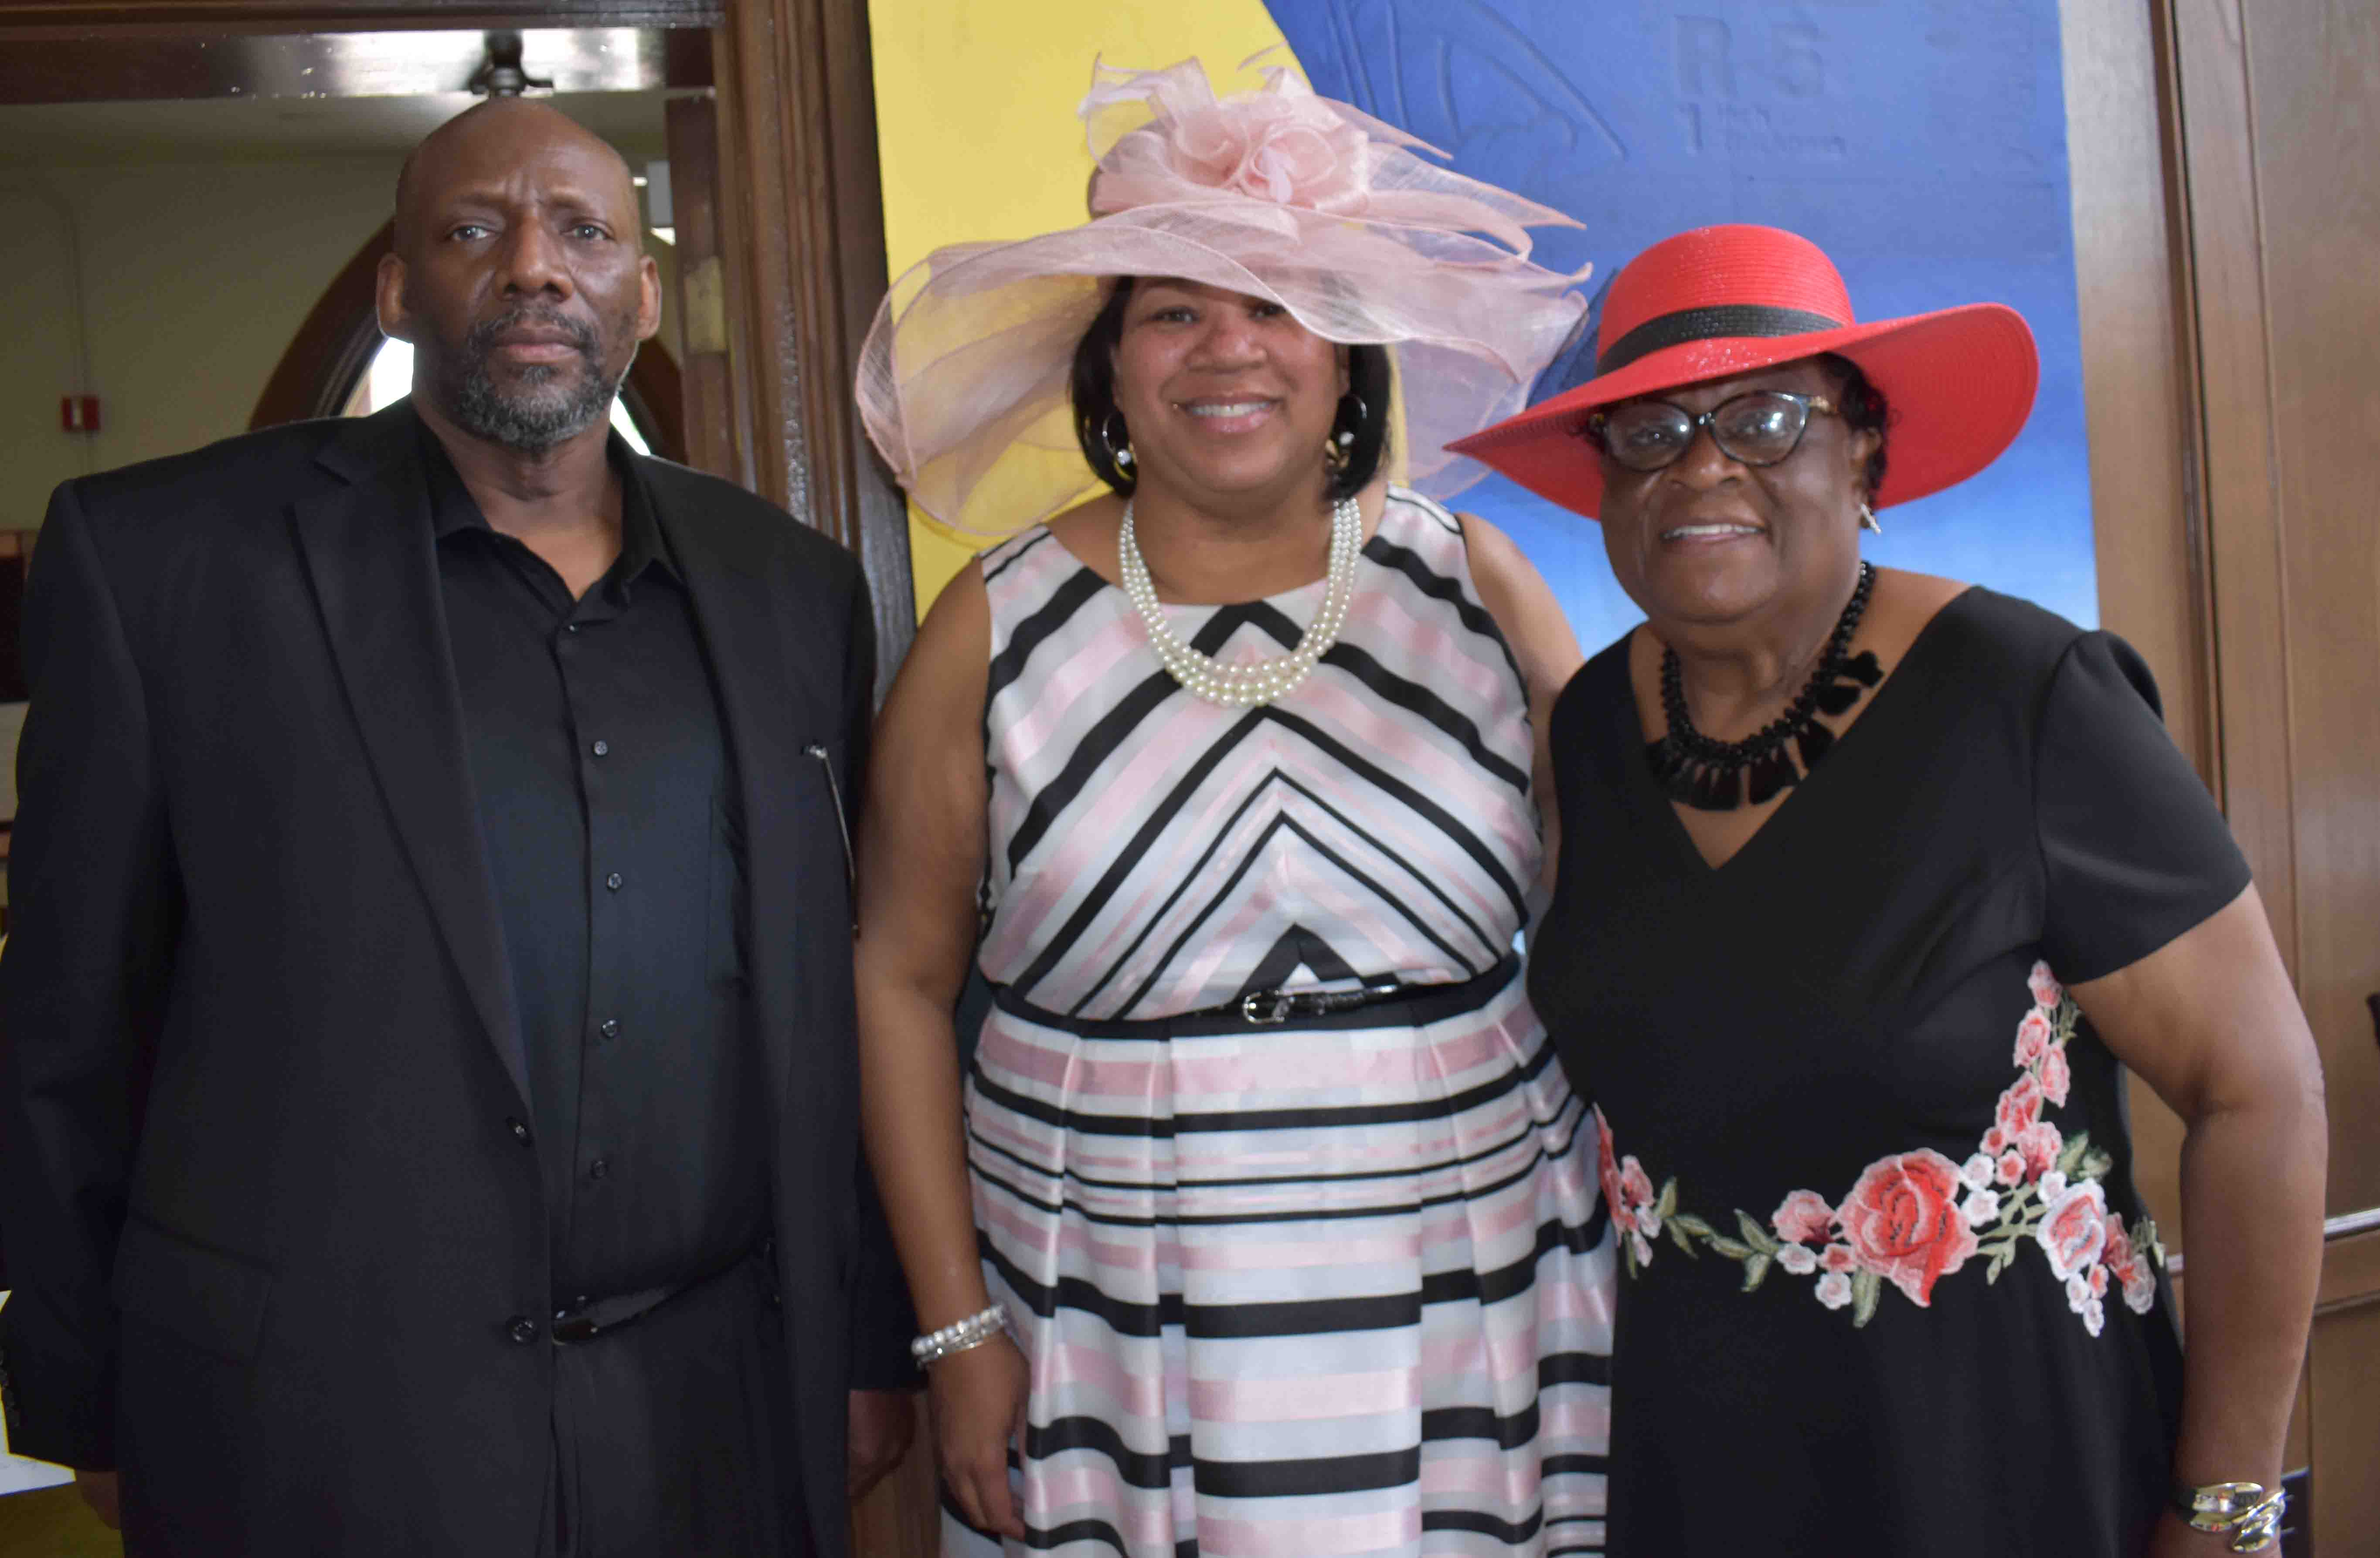 R.S. McCullough, Kimbelry Mayberry, Virginia Burks